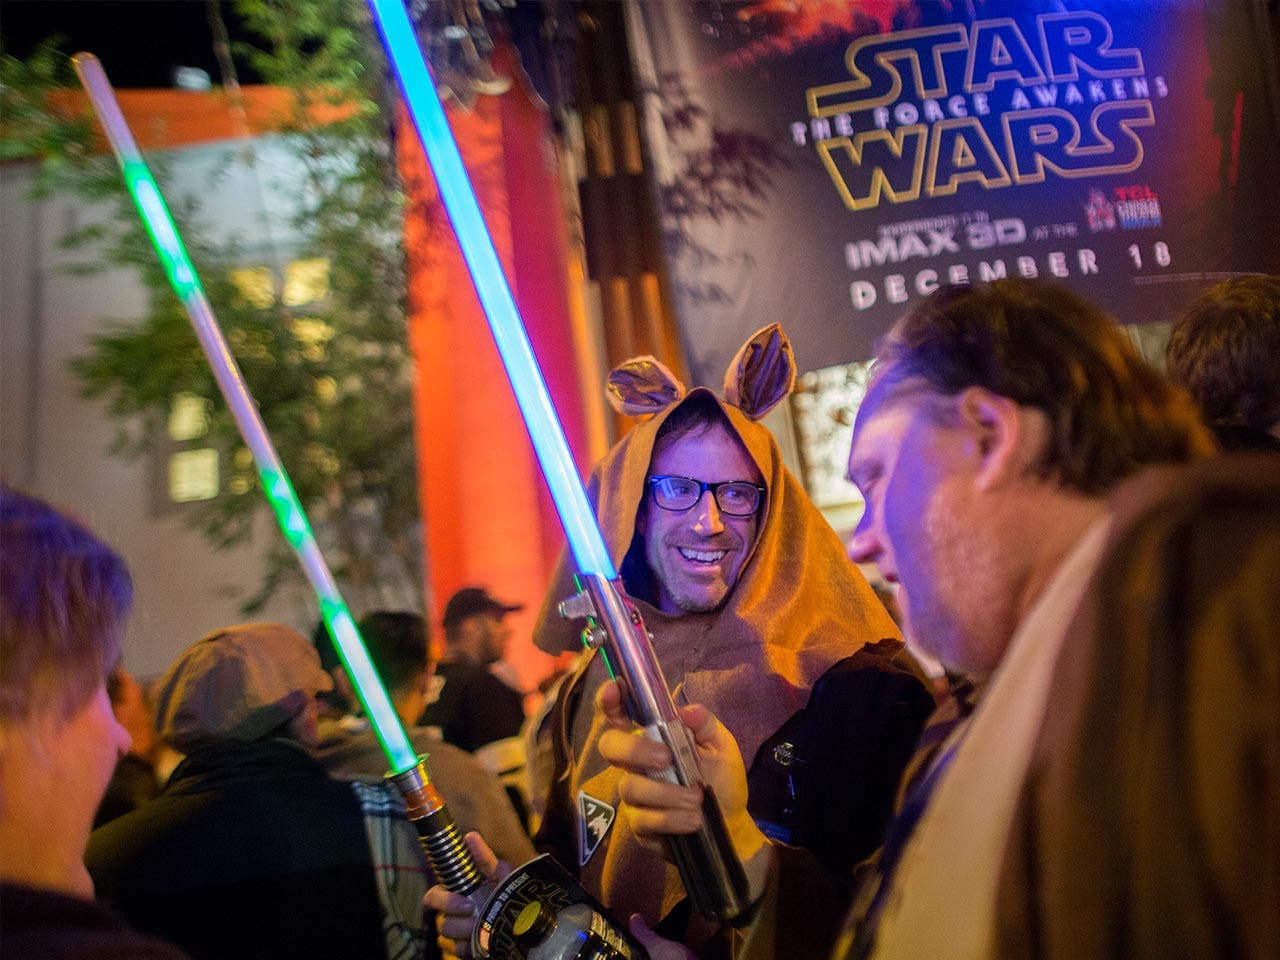 'Star Wars' fans standing outside movie theater in costume